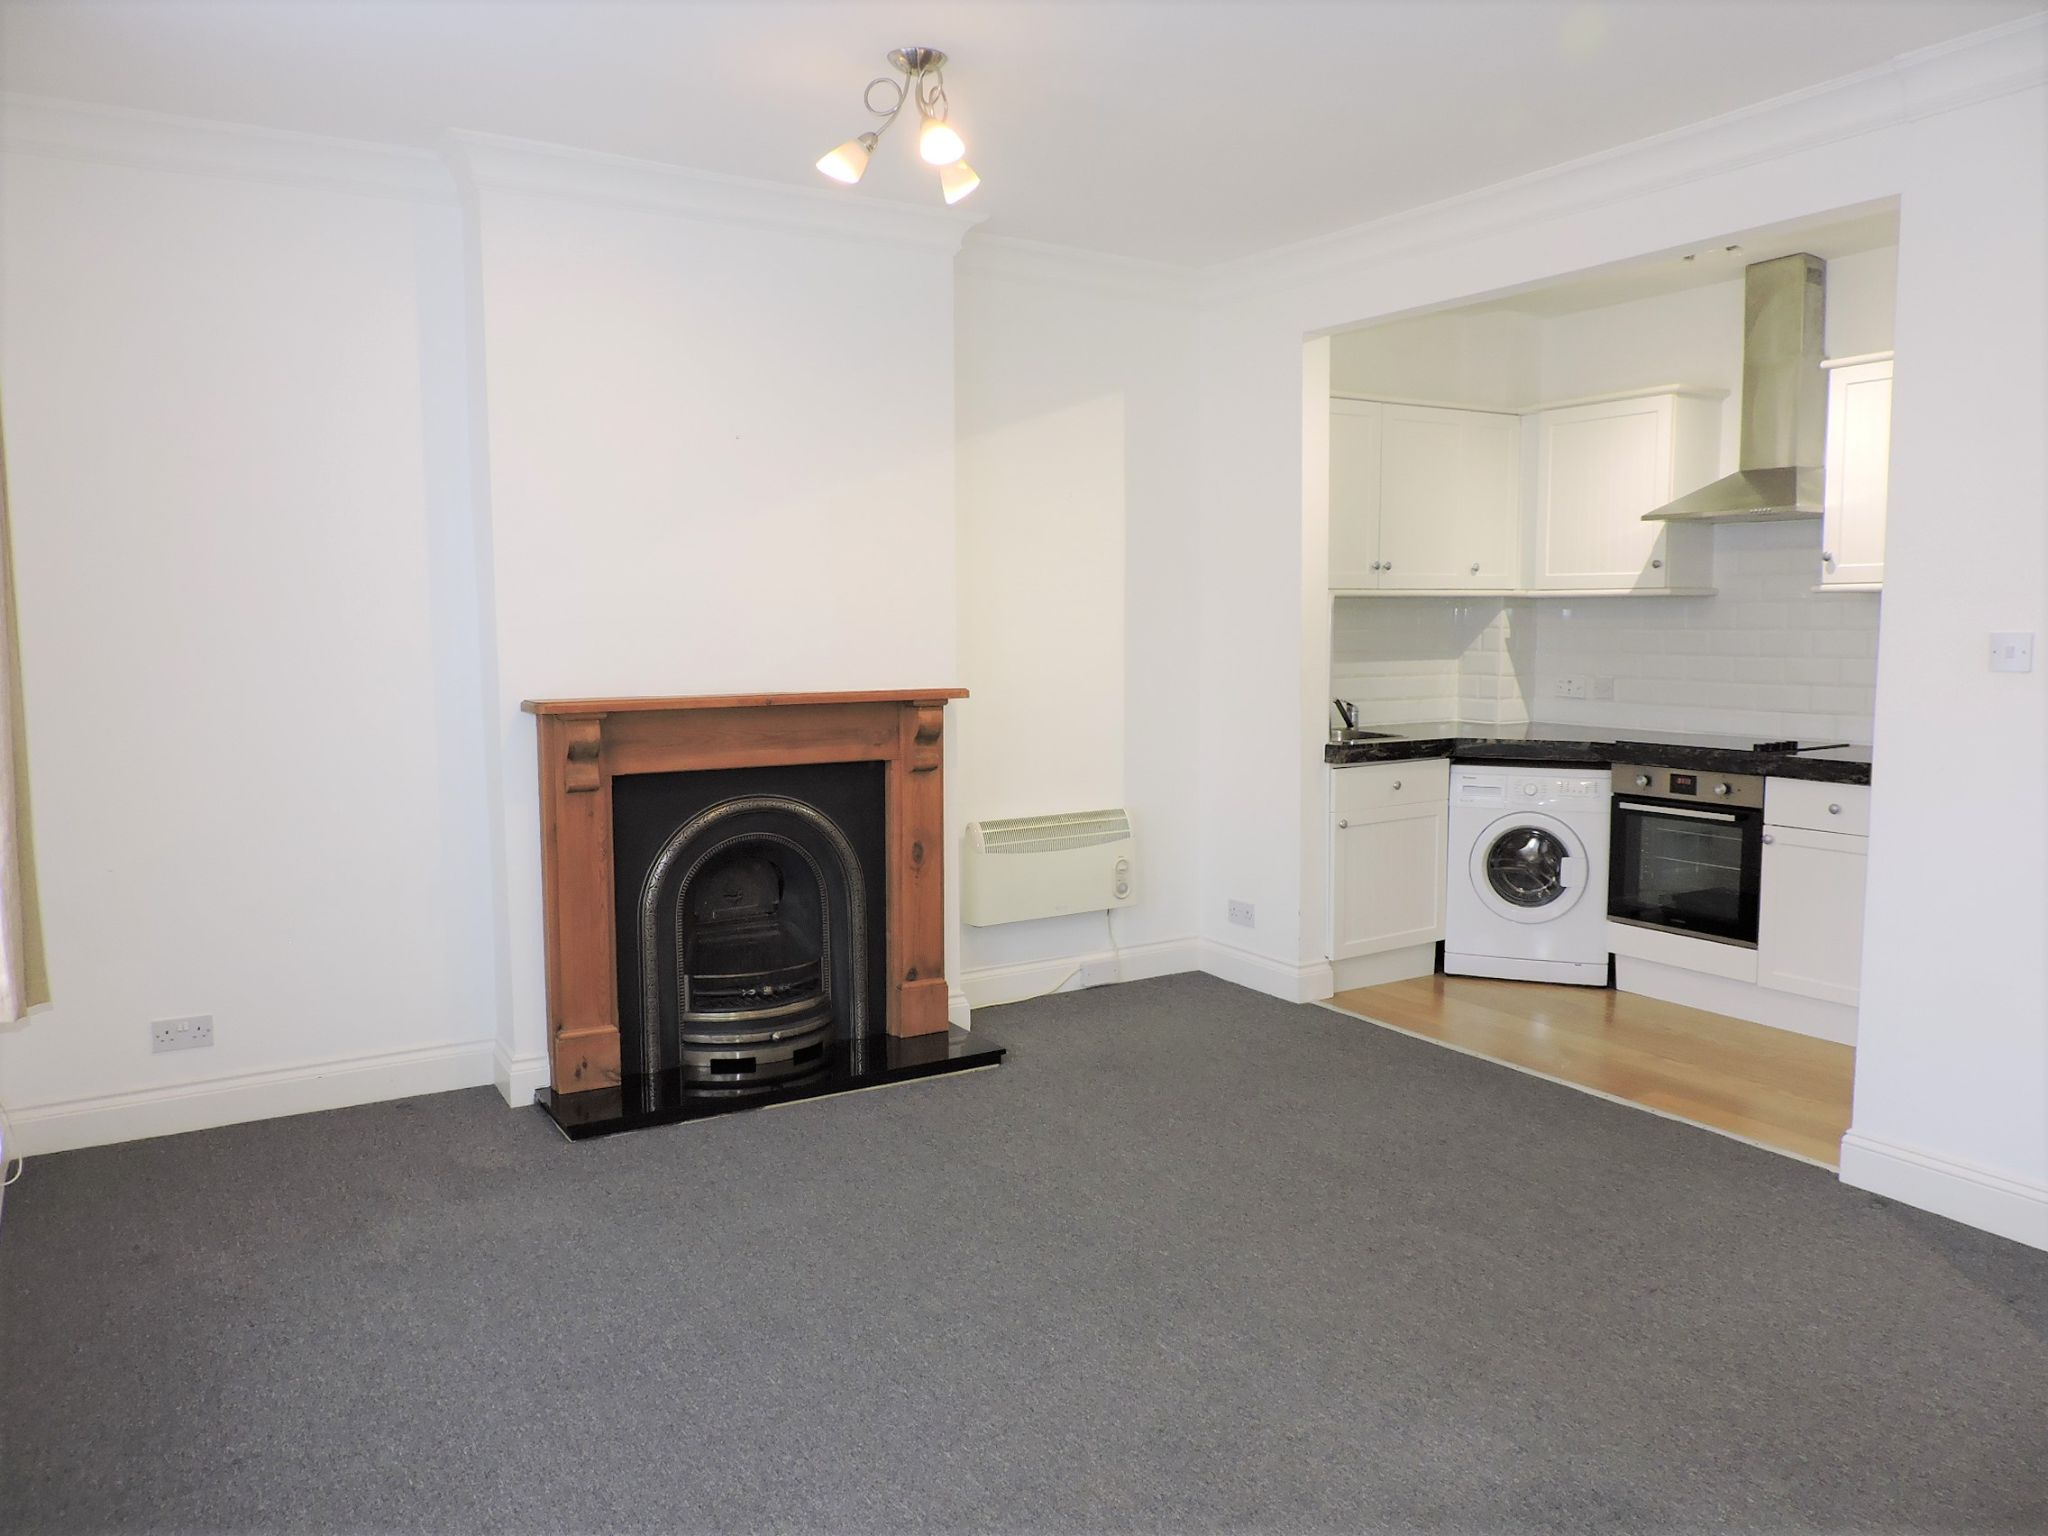 1 bedroom flat flat/apartment Let in New Malden - Photograph 1